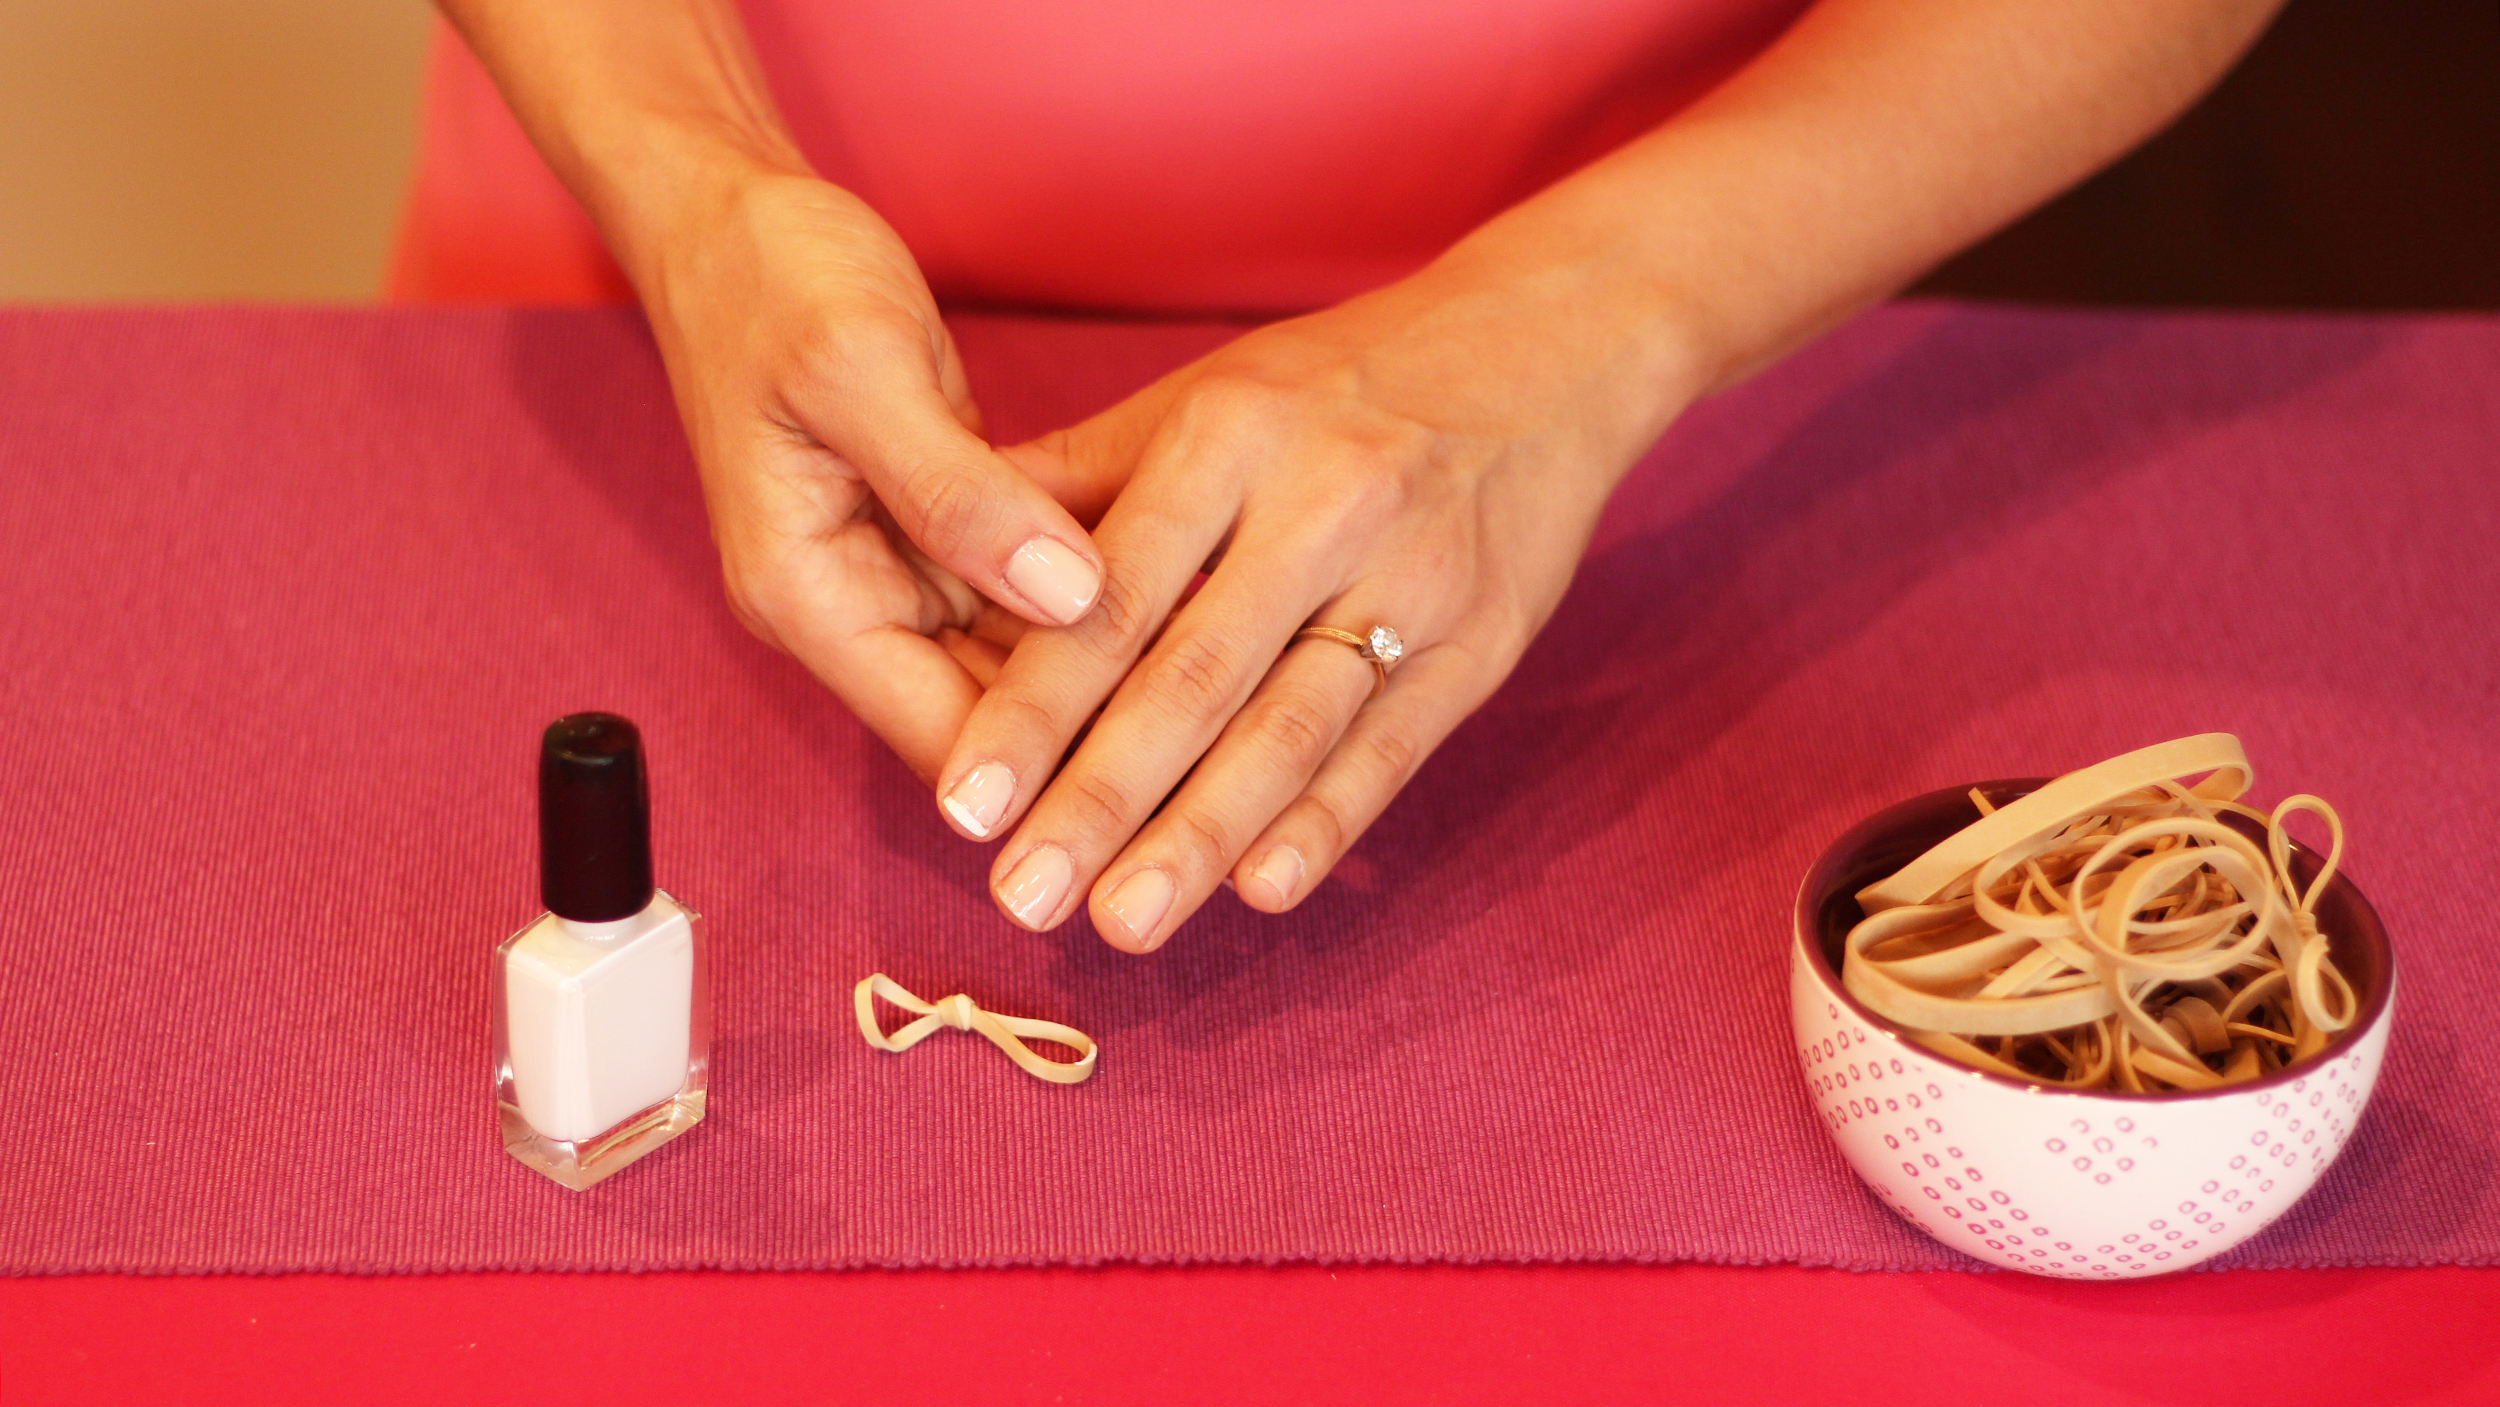 French manicure hack: Use a rubber band!